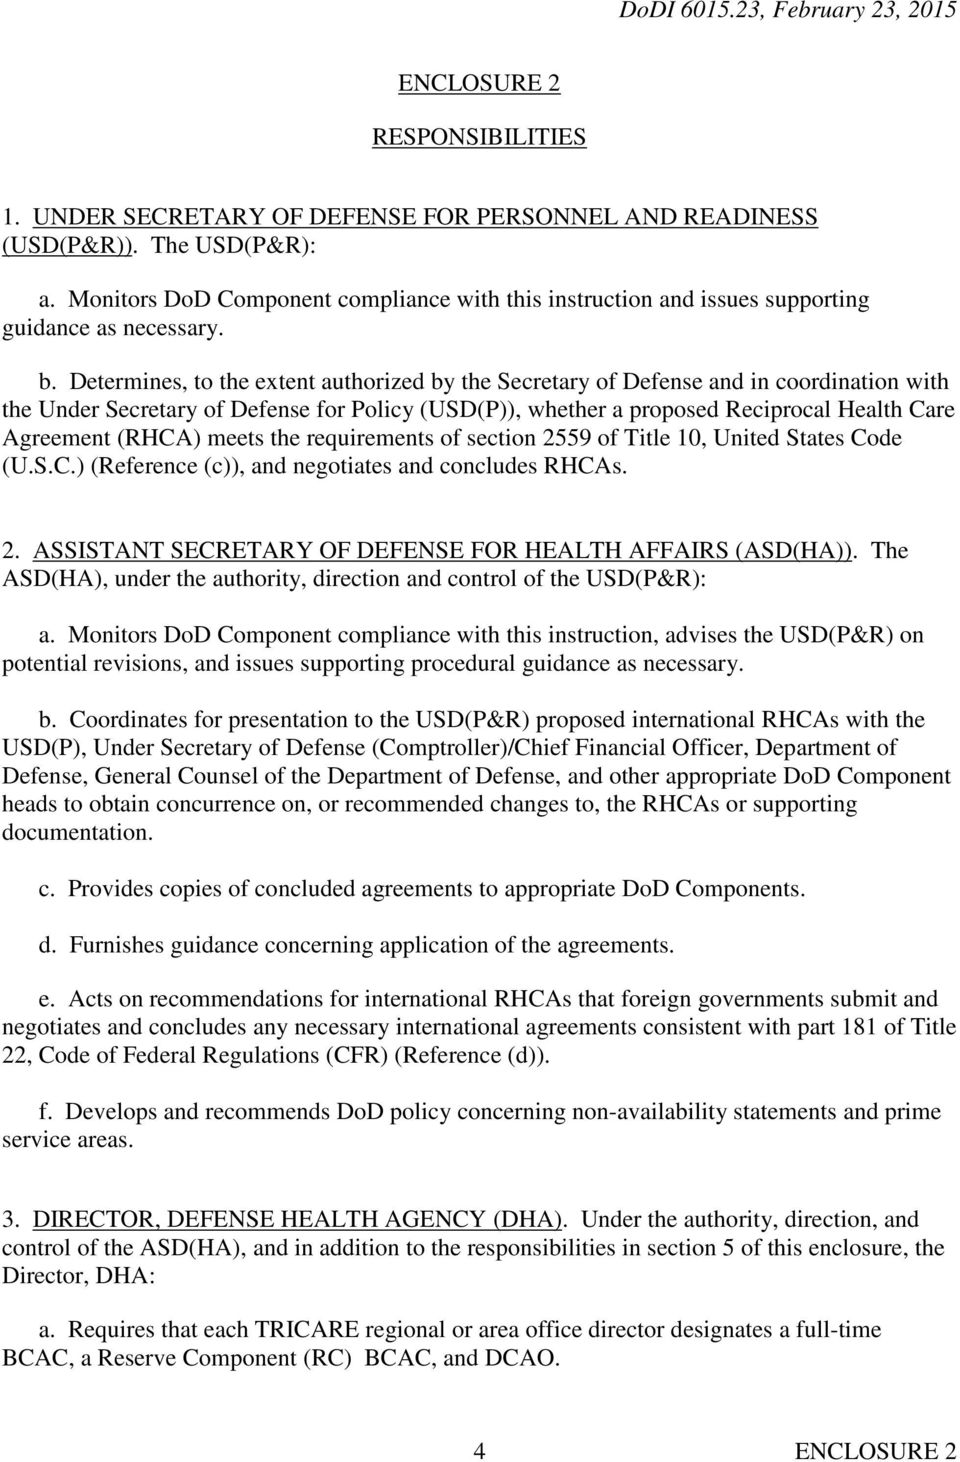 Determines, to the extent authorized by the Secretary of Defense and in coordination with the Under Secretary of Defense for Policy (USD(P)), whether a proposed Reciprocal Health Care Agreement